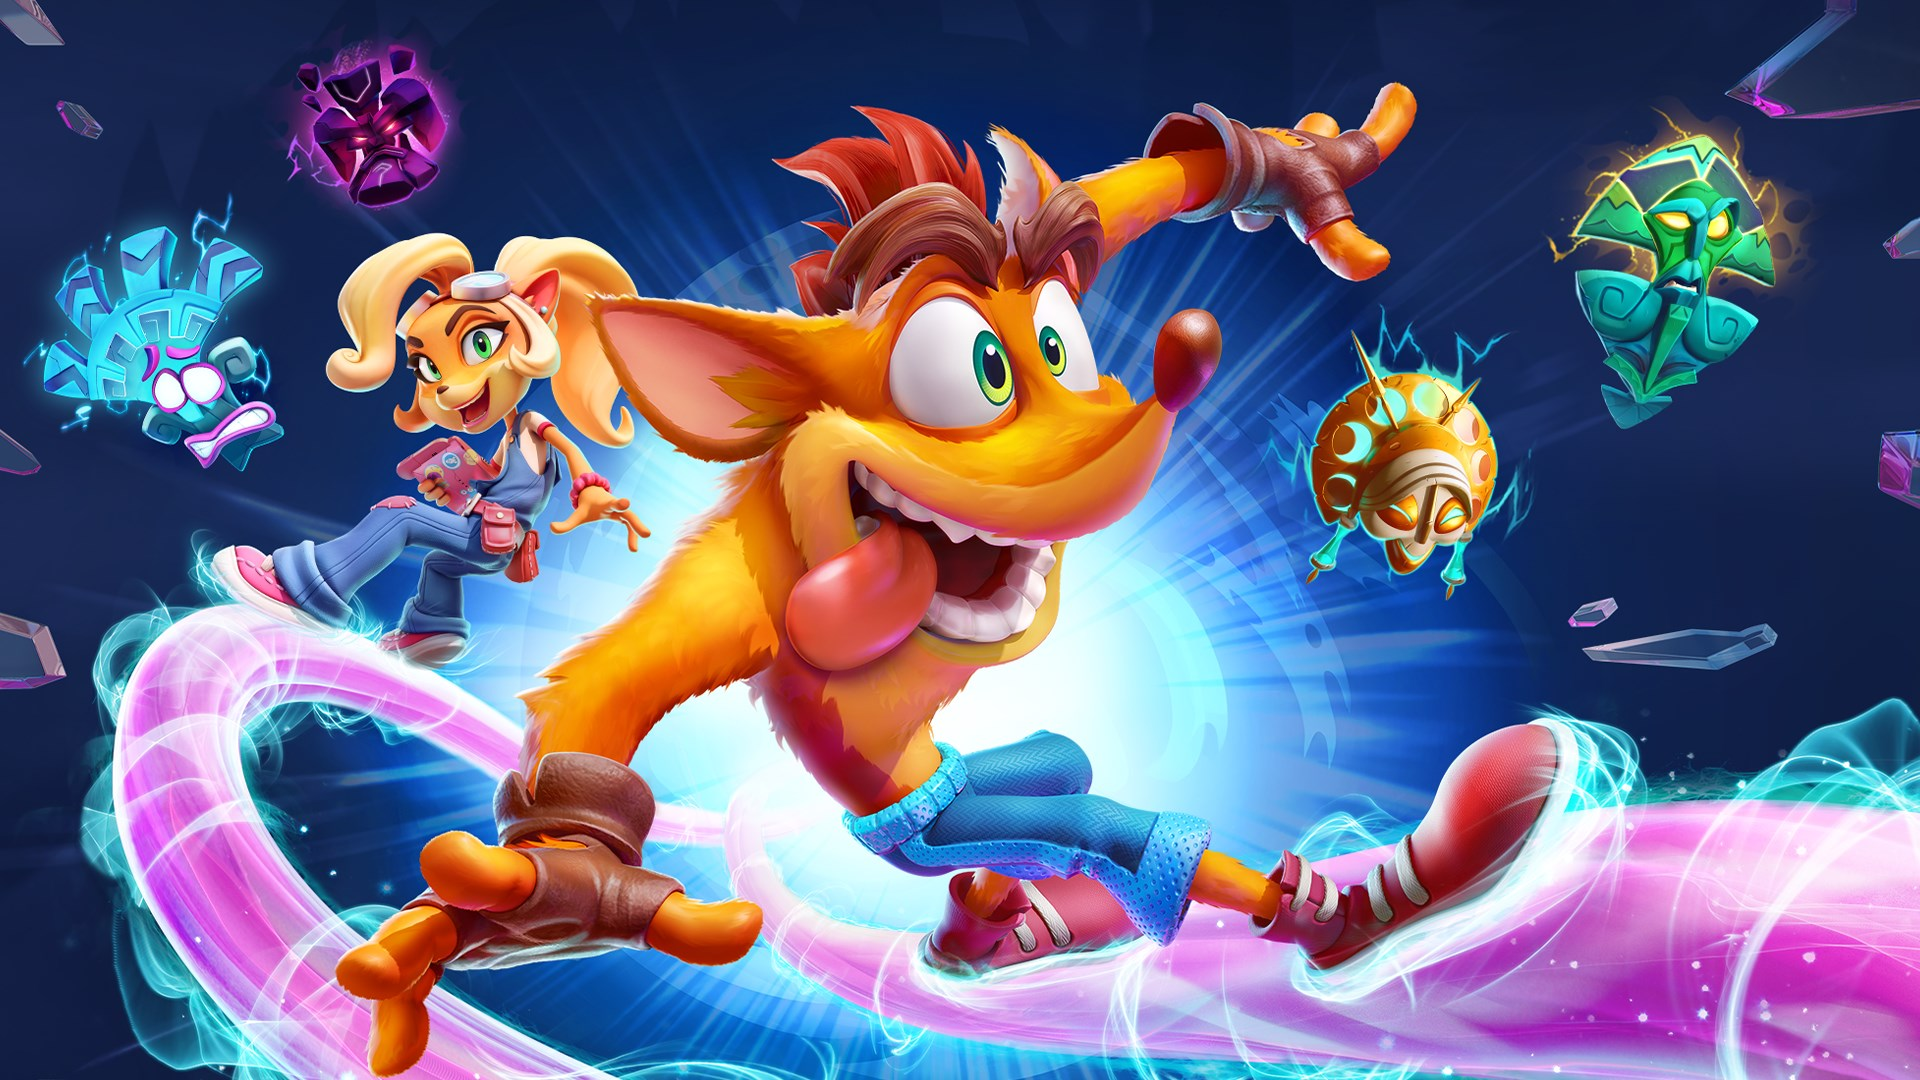 Crash Bandicoot 4: It's About Time: Table for Cheat Engine [UPD: 15.04.2021]